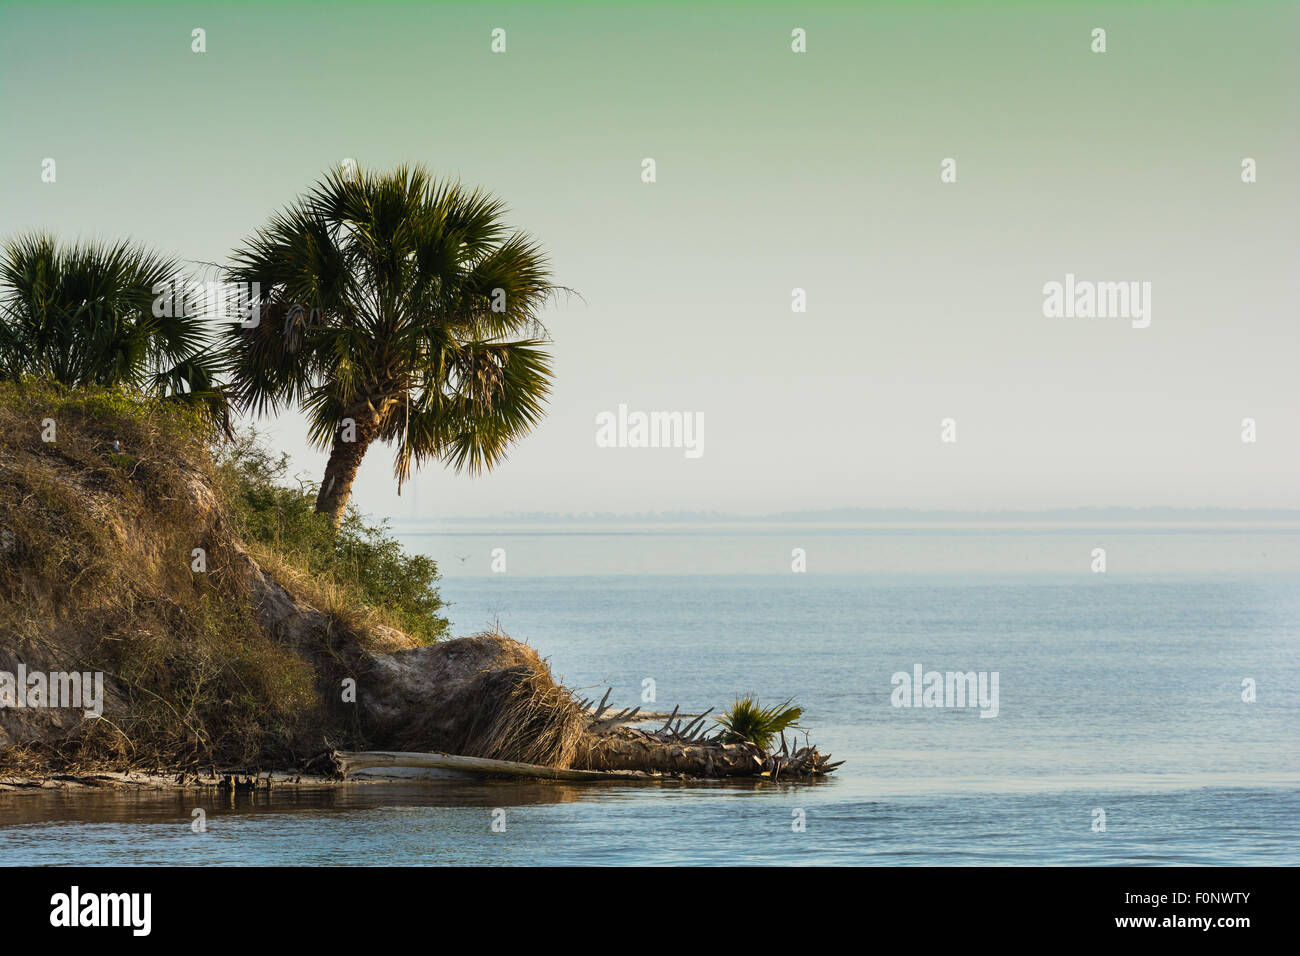 Palm tree leans over Gulf of Mexico in Florida's Forgotten Coast - Stock Image